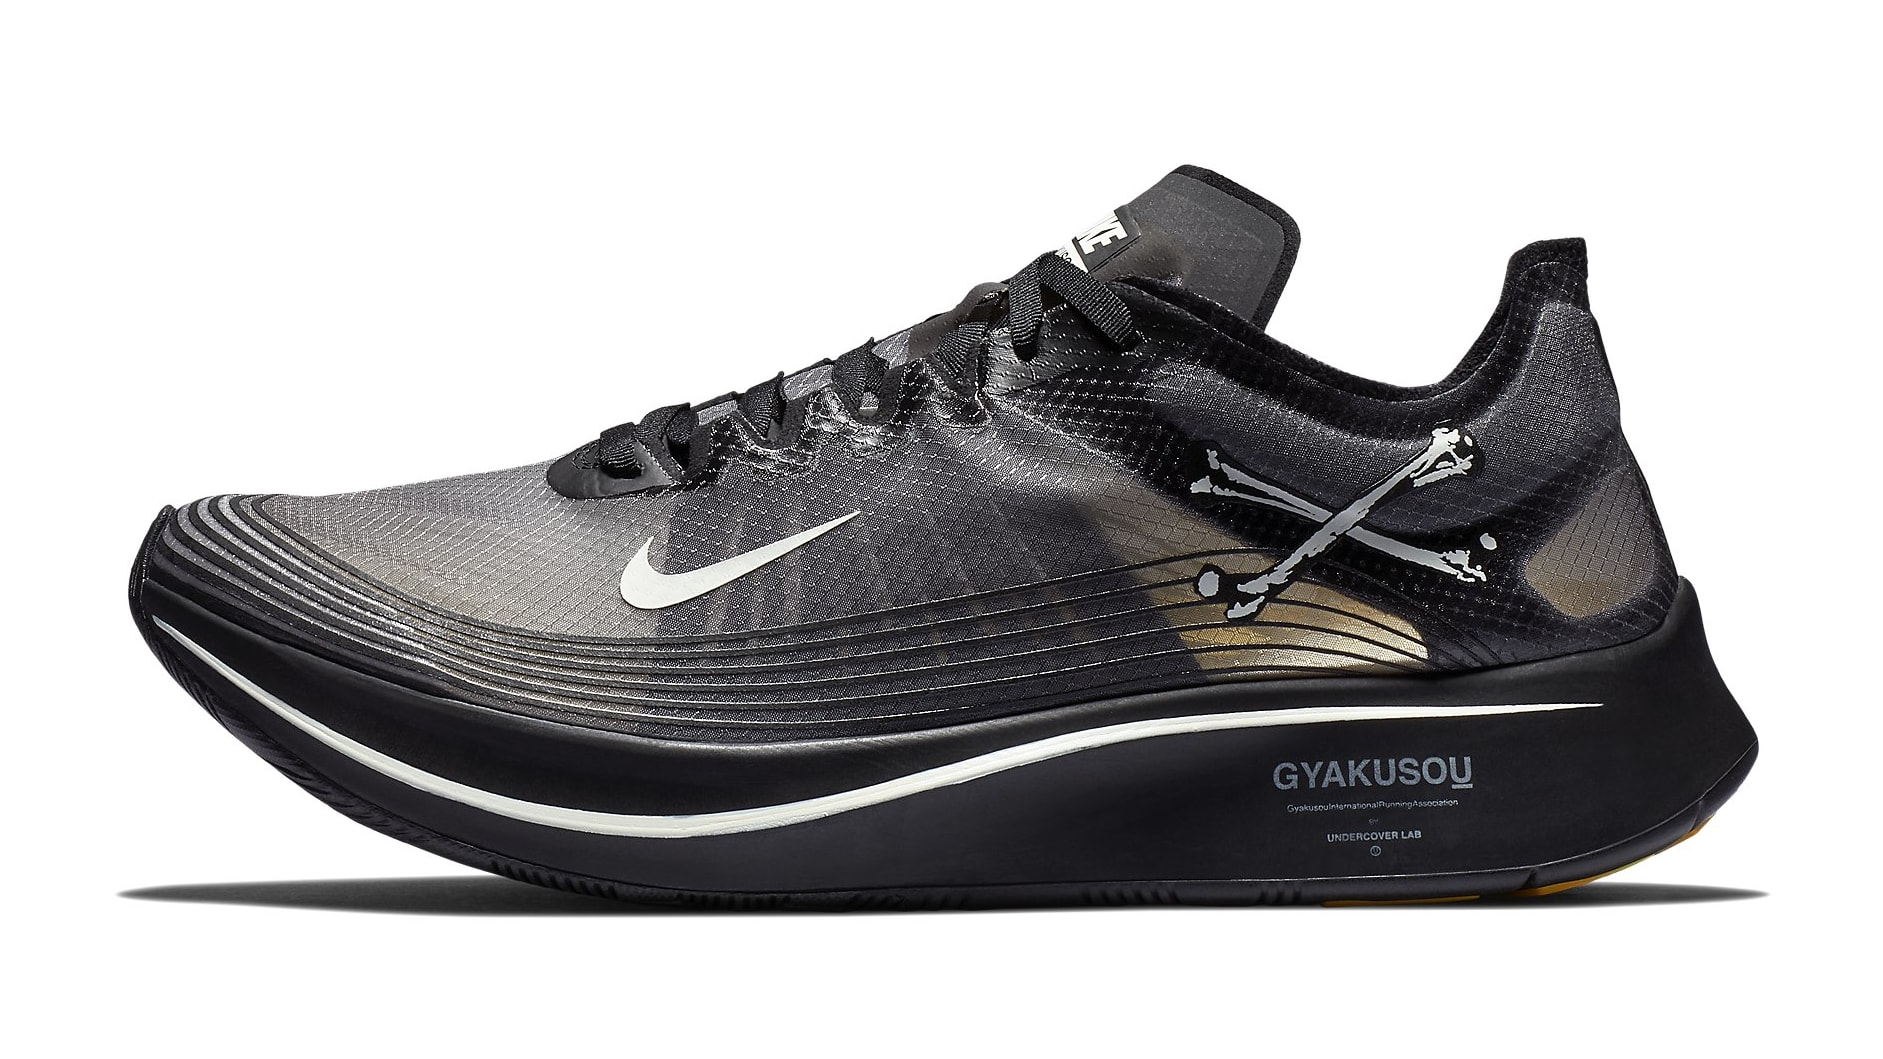 undercover-dyakusou-nike-zoom-fly-sp-black-ar4349-001-lateral